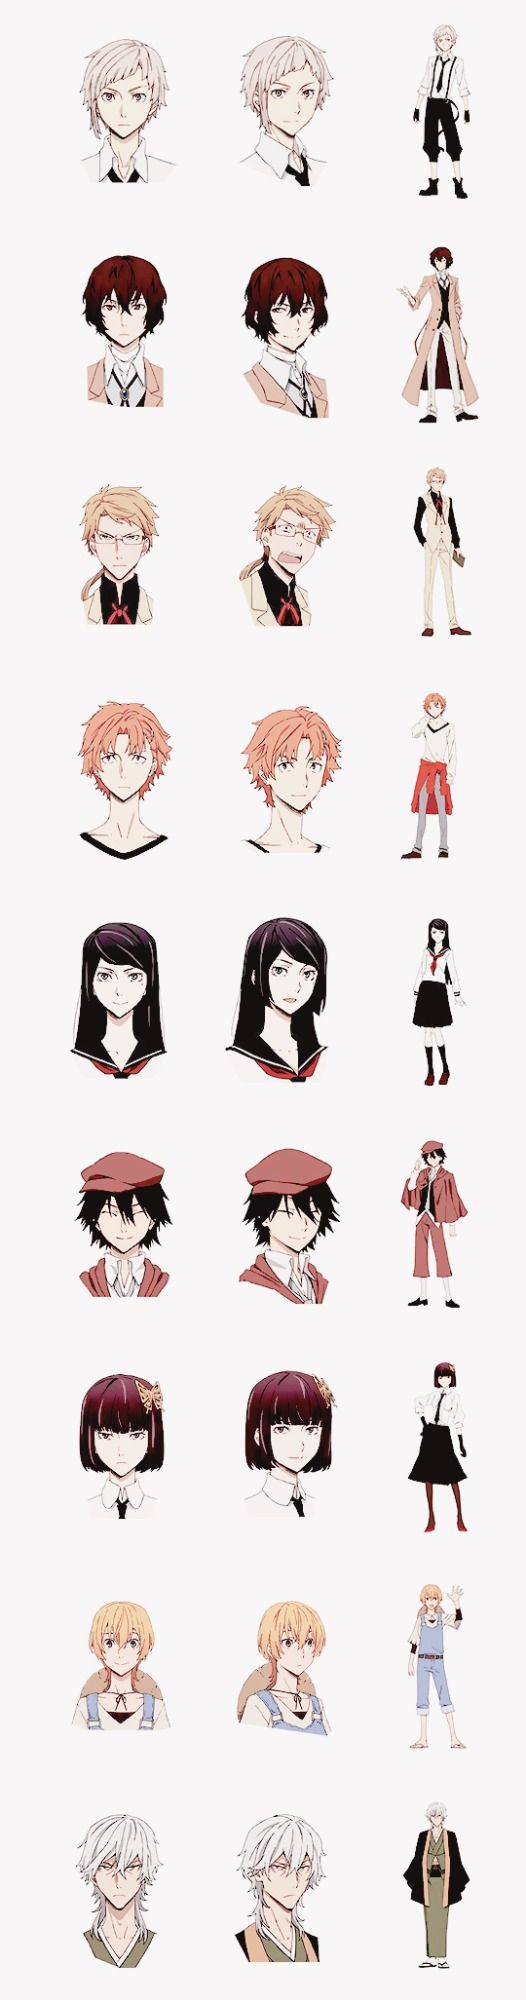 Bungou Stray Dogs | Armed Detective Agency